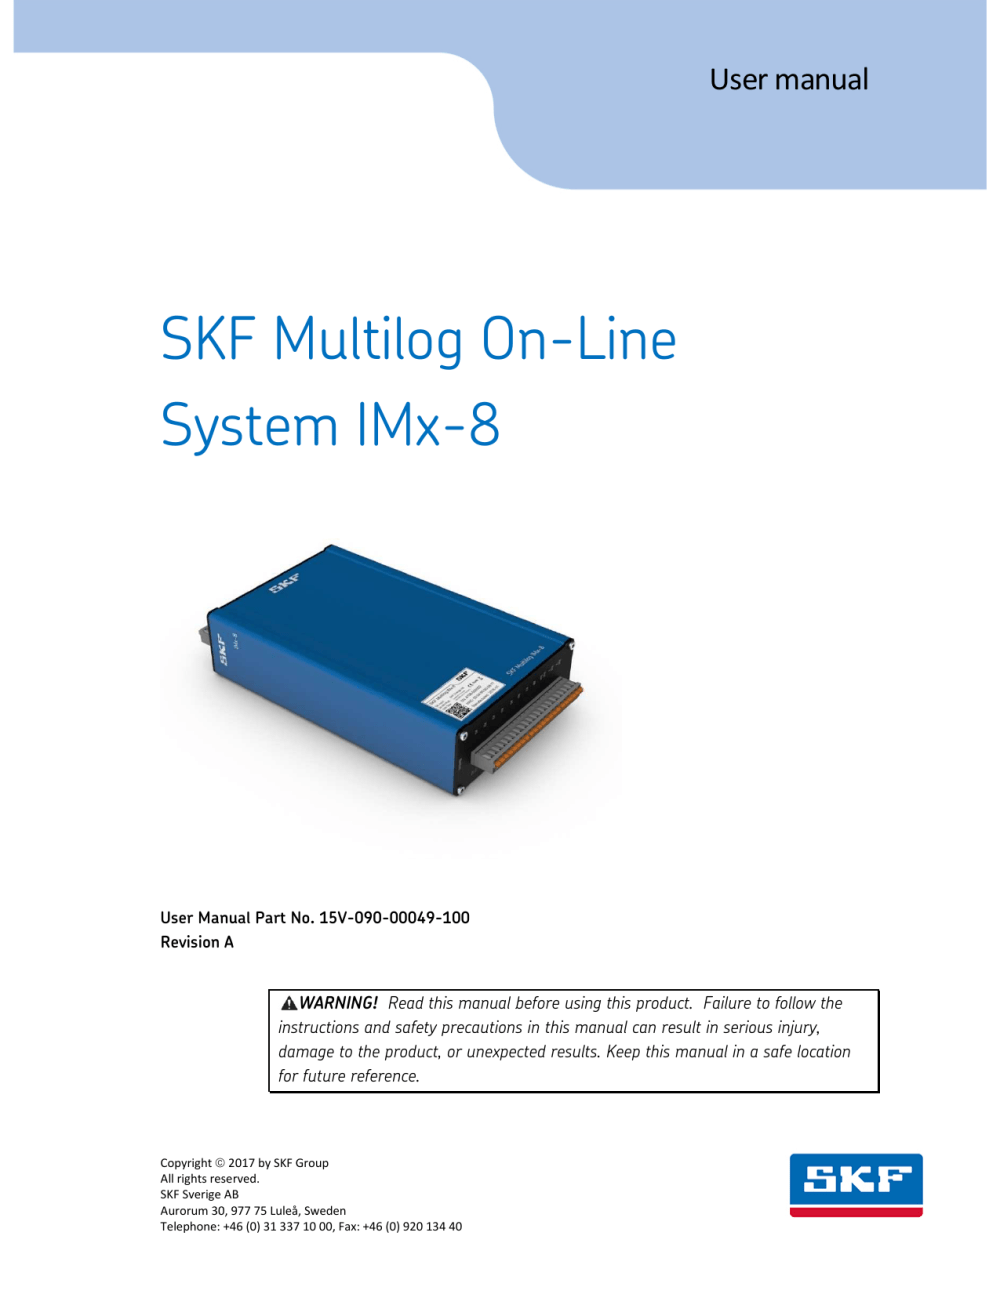 medium resolution of skf multilog on line system imx 8